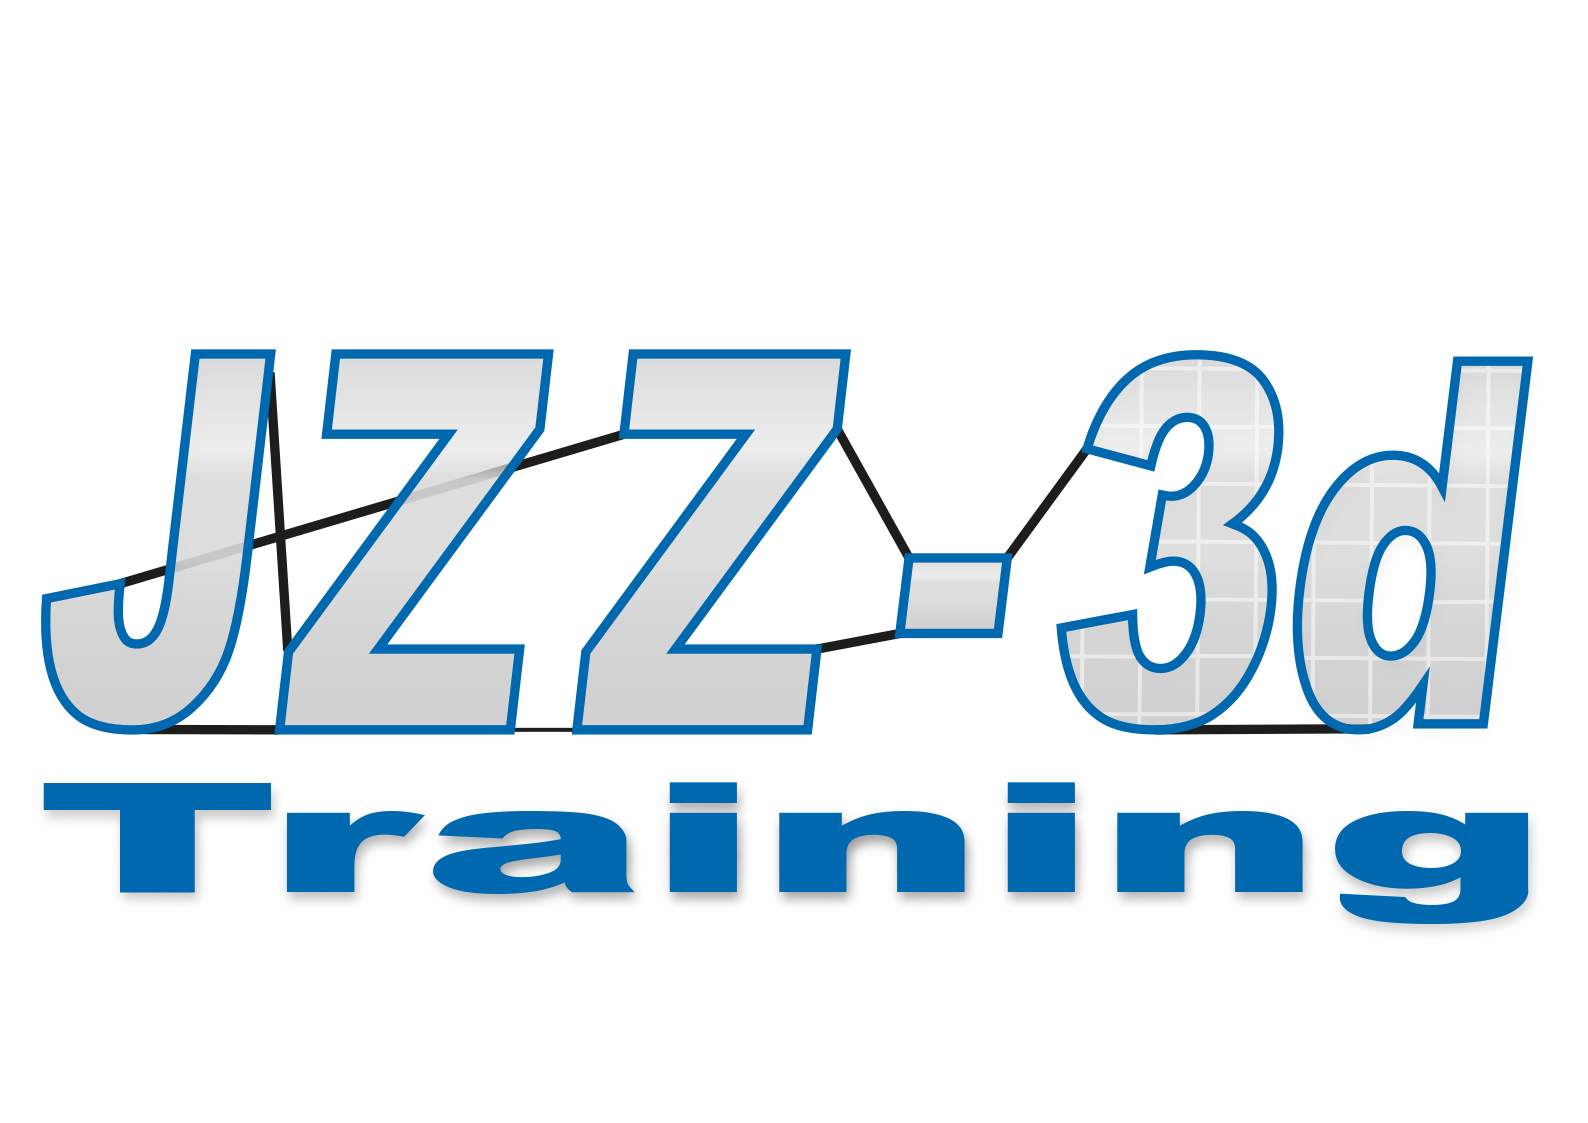 JZZ-3d Training logo 2018